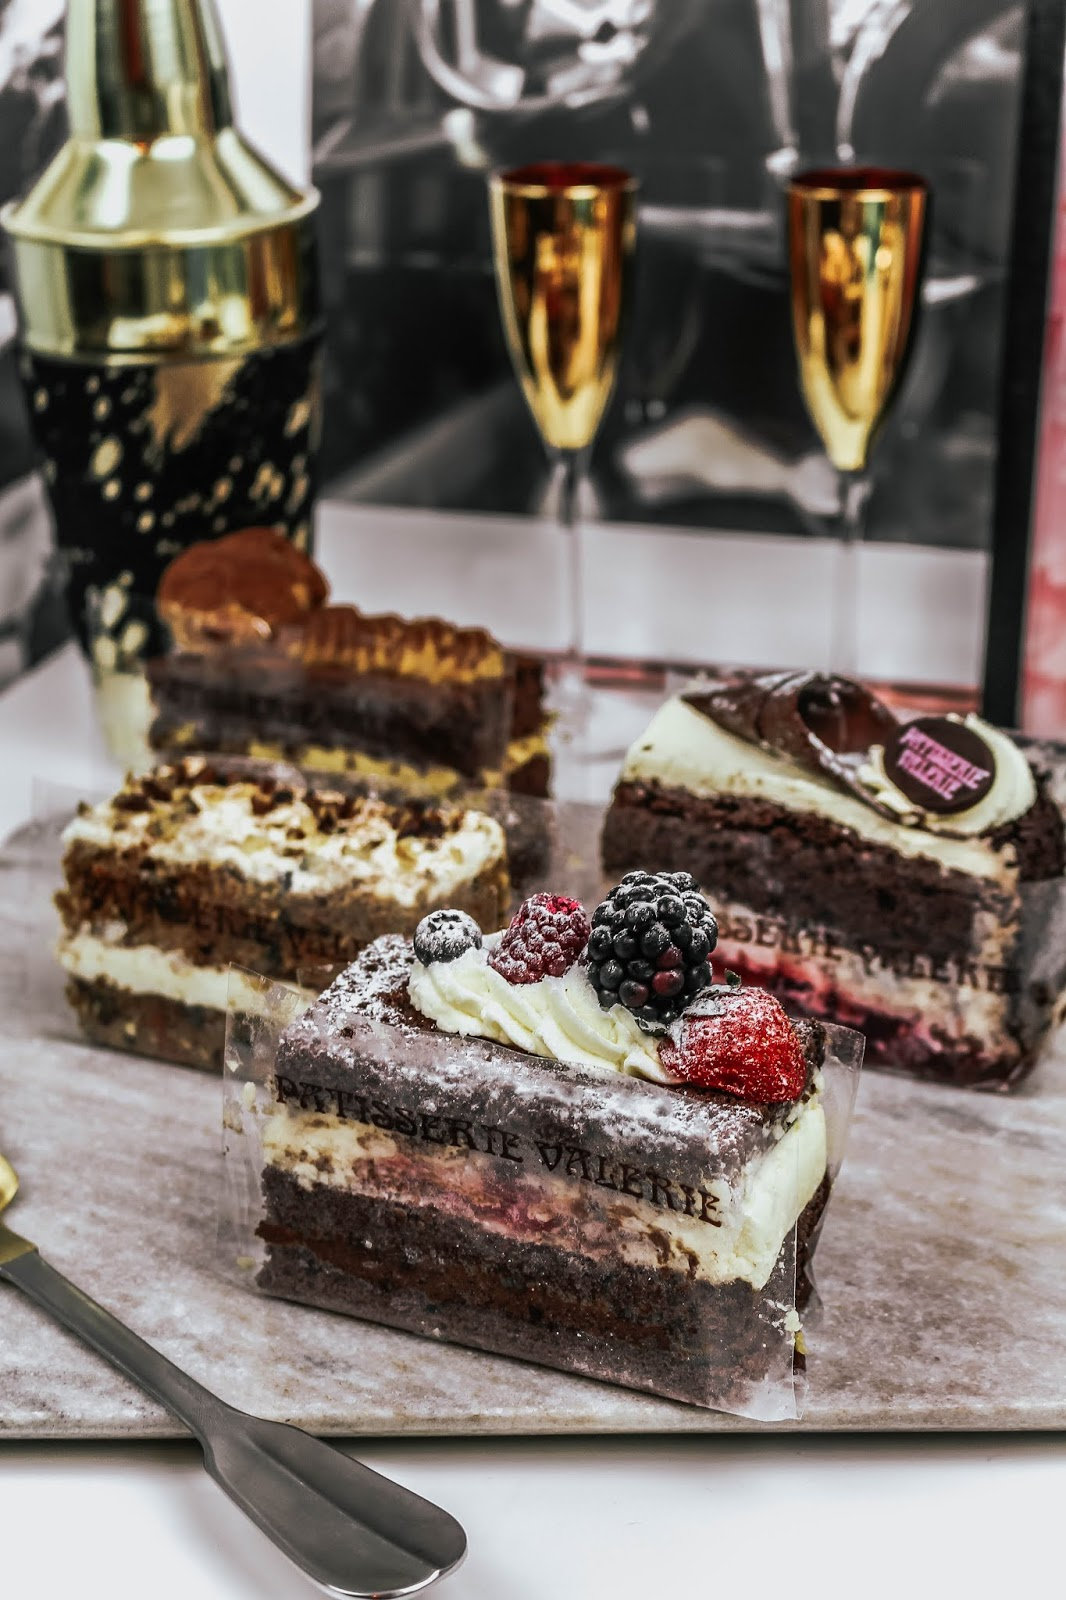 Patisserie Valerie Slices of Cake Afternoon Tea